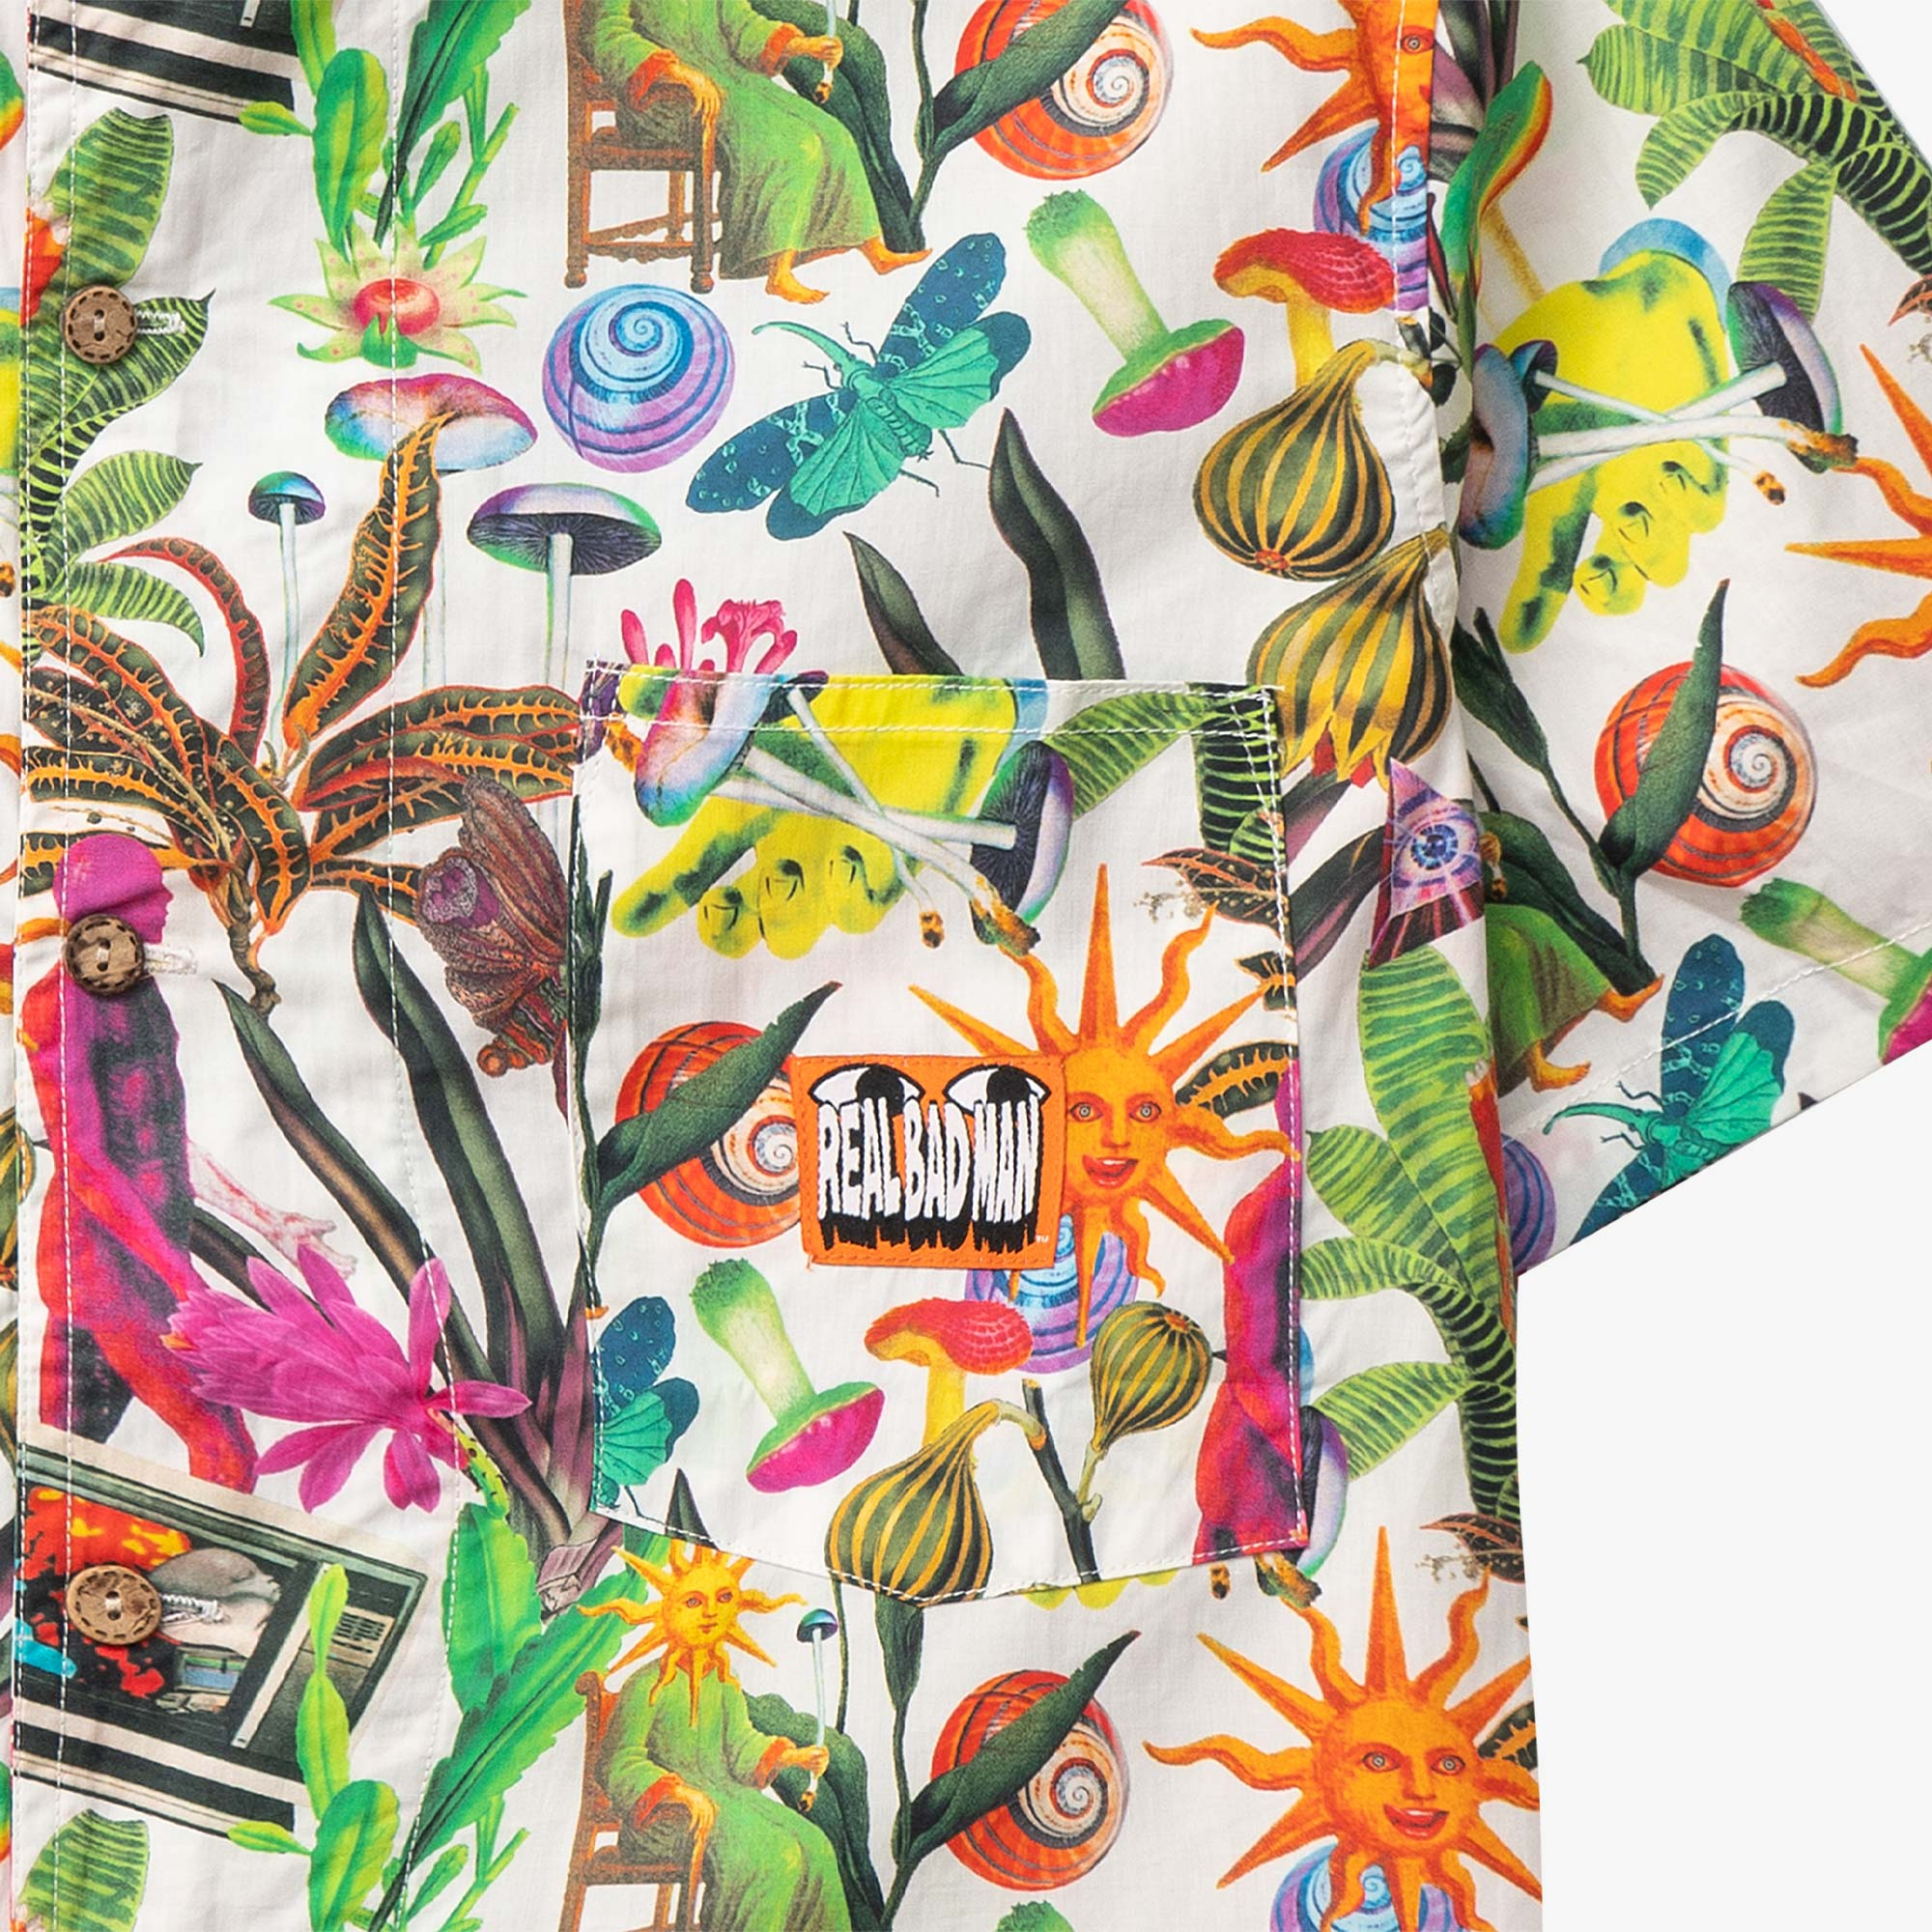 Real Bad Man Psychedelica Vacation Button Down - Black Multi Print 3